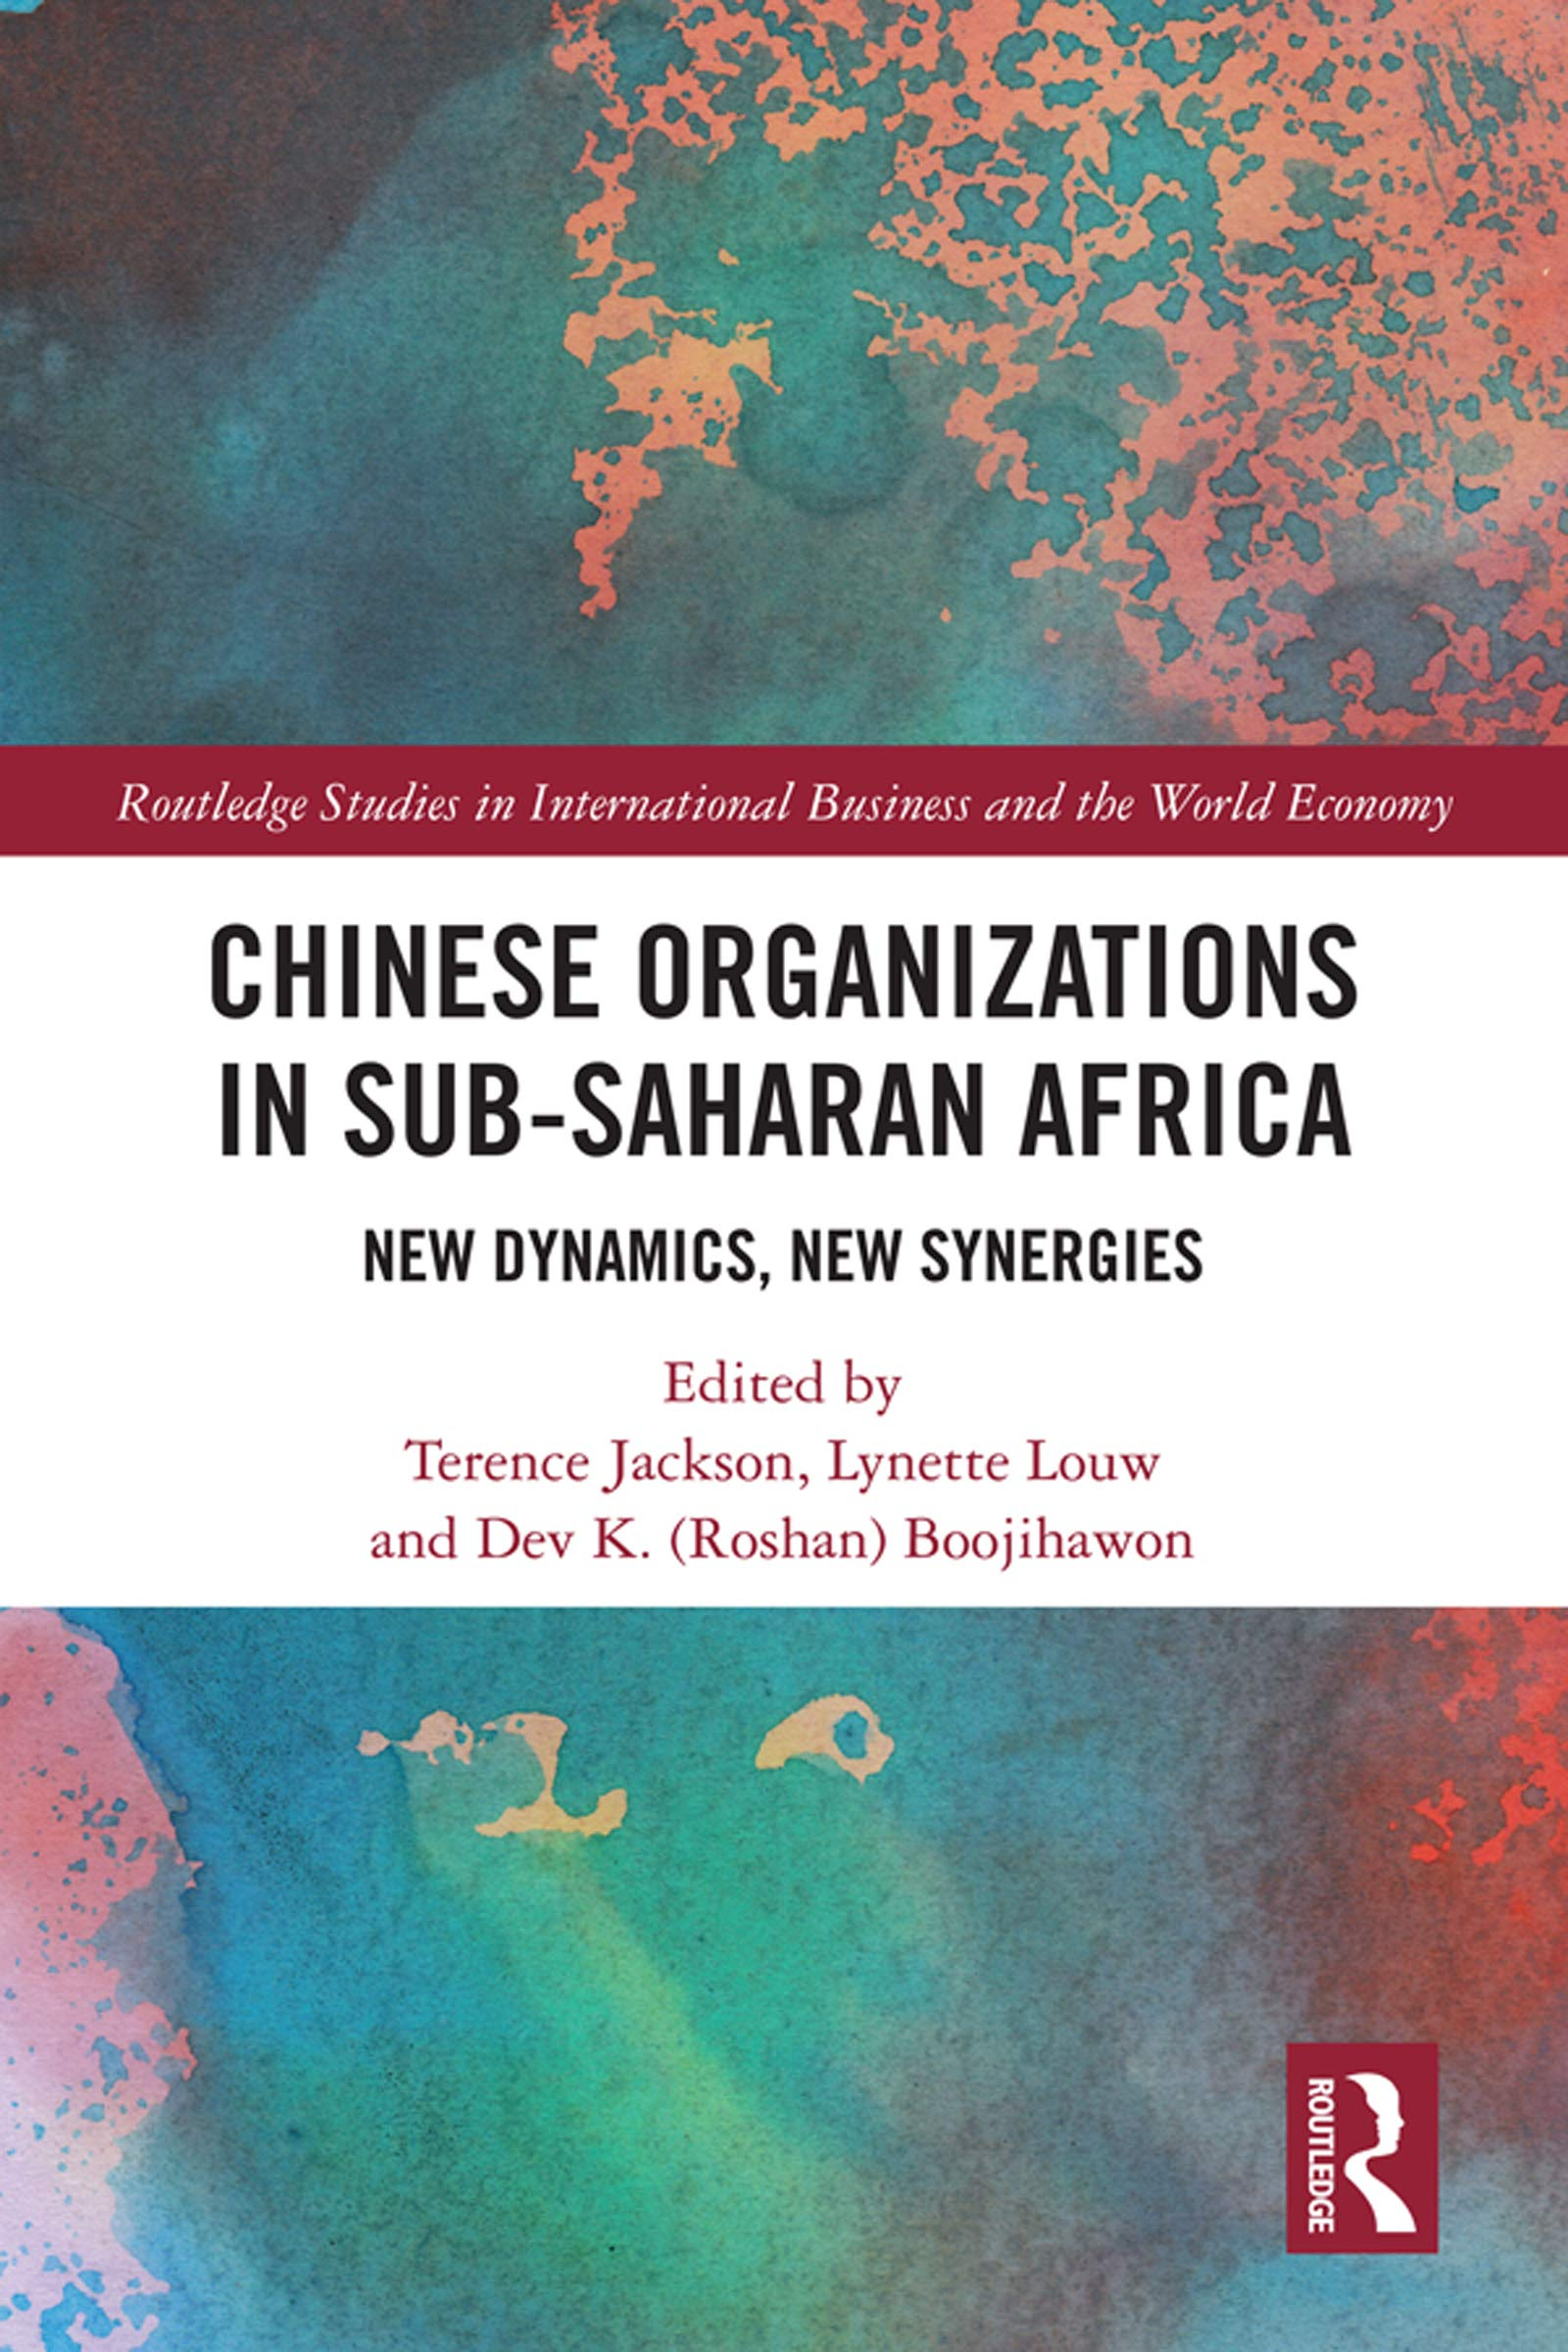 Chinese Organizations in Sub-Saharan Africa: New Dynamics, New Synergies (Routledge Studies in International Business and the World Economy)